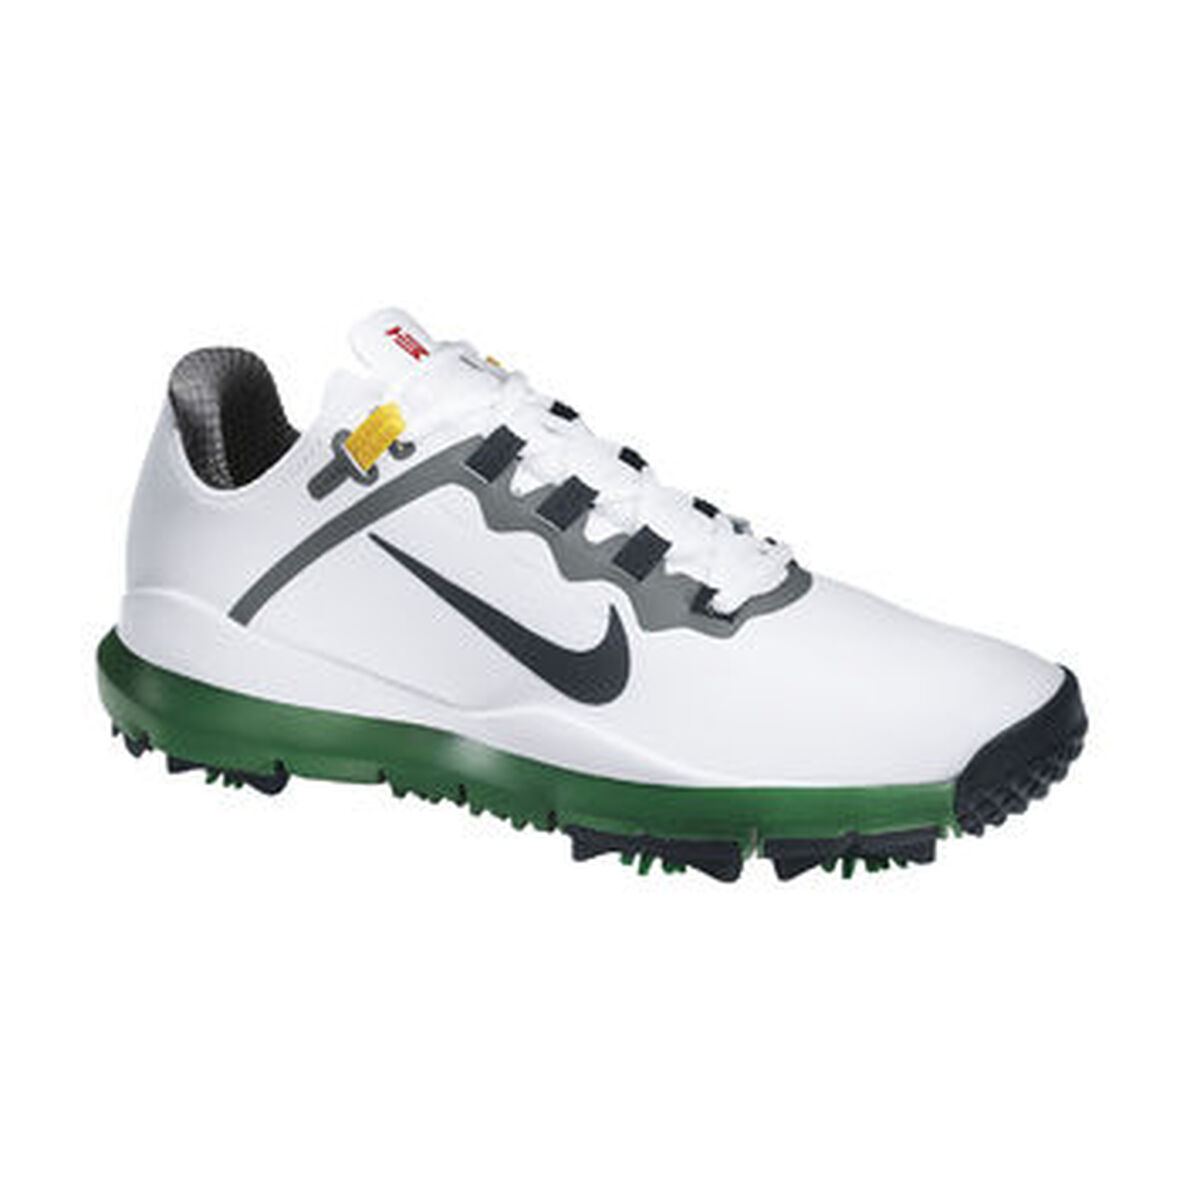 reputable site 15ce5 ee6a1 Nike TW 13 Limited Edition Zoom Image